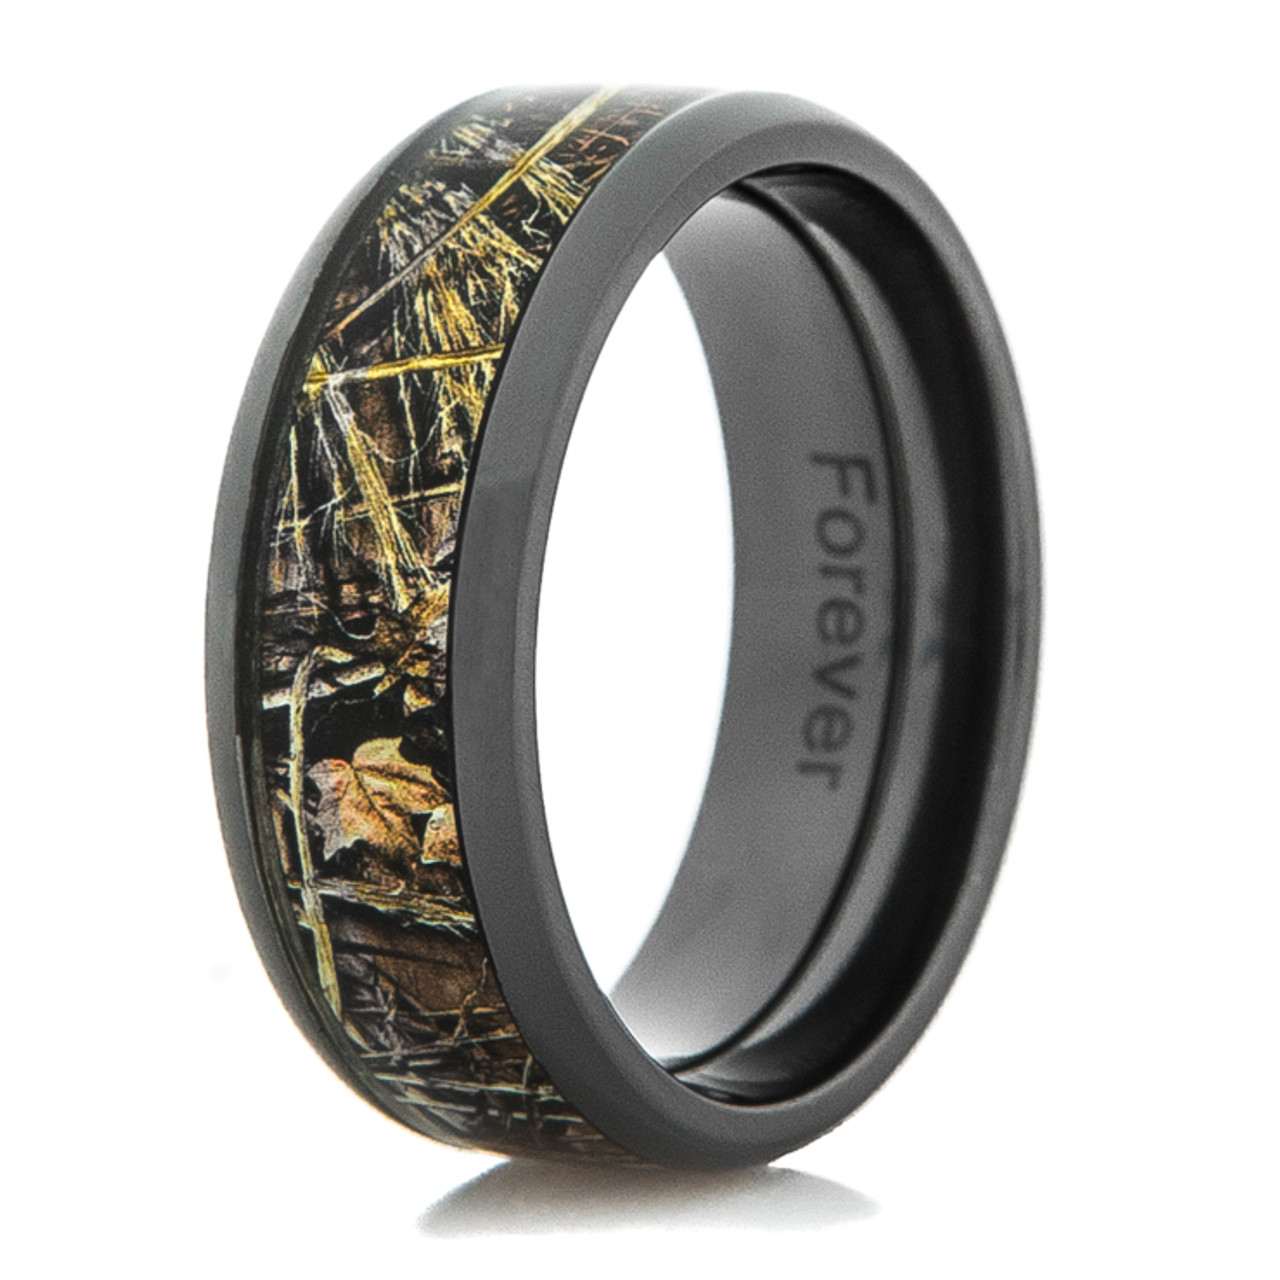 silver hook titanium hers camo with cheap prices her him set rings band realtree black and wedding sterling mens ideas bandor zvvl fishing his literarywondrous for diamonds gone ring